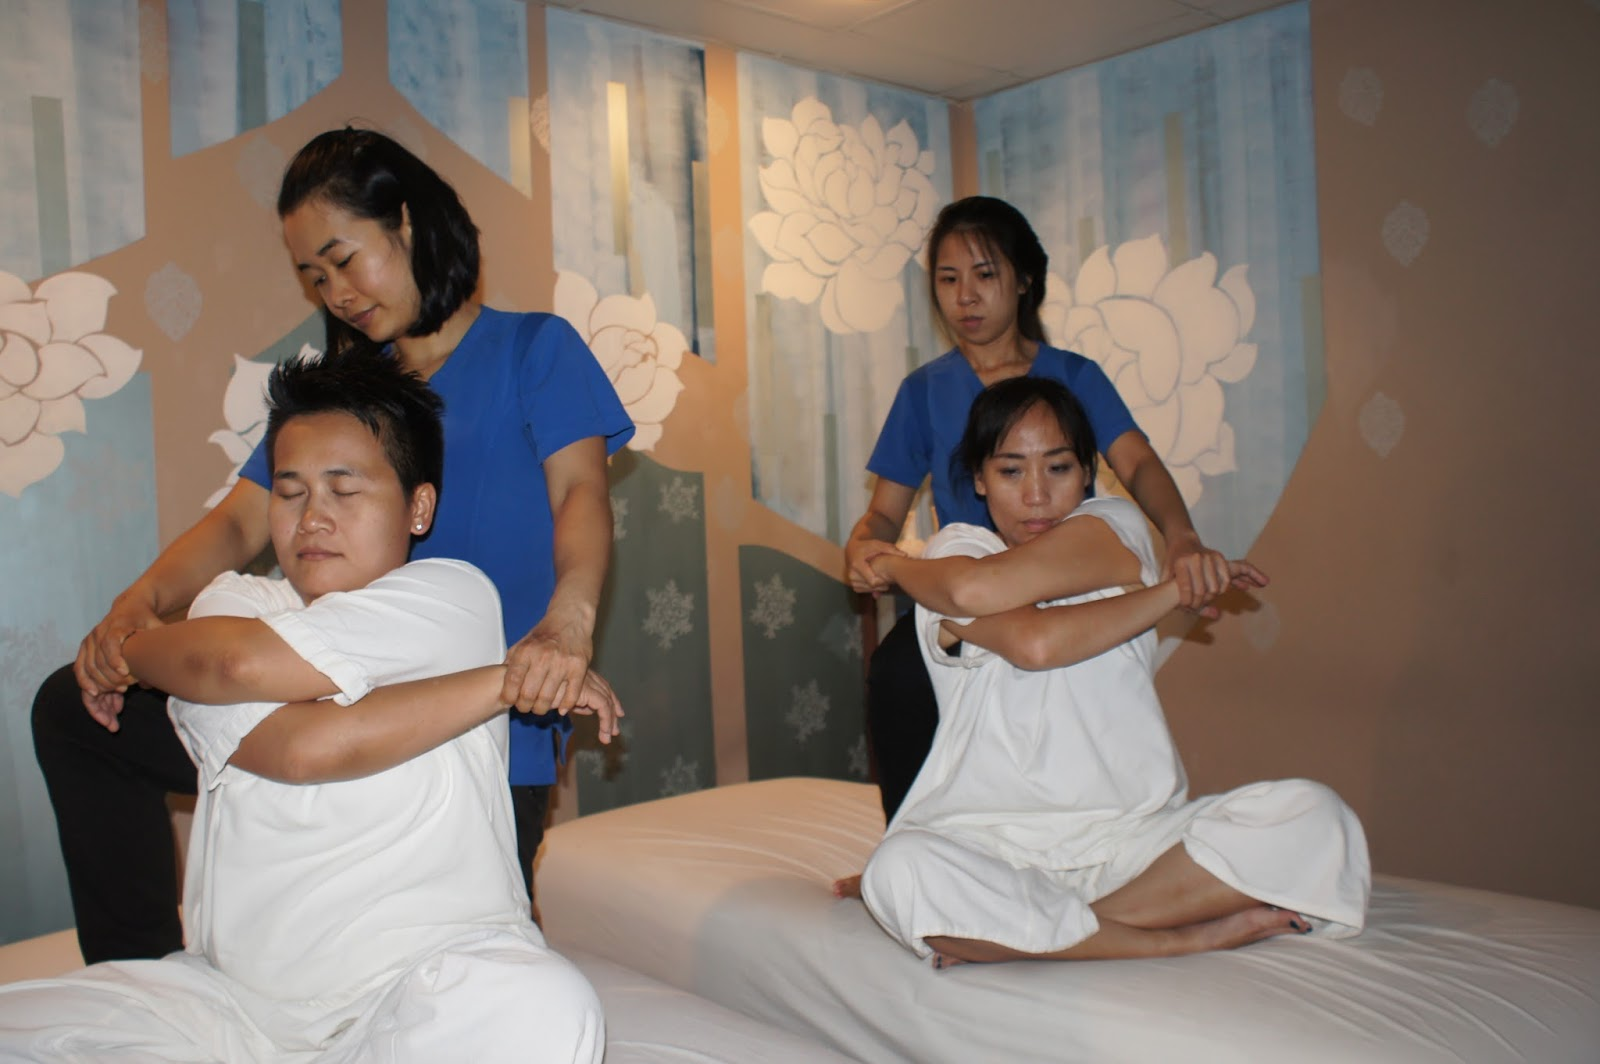 vittsjö spa thai massage queens